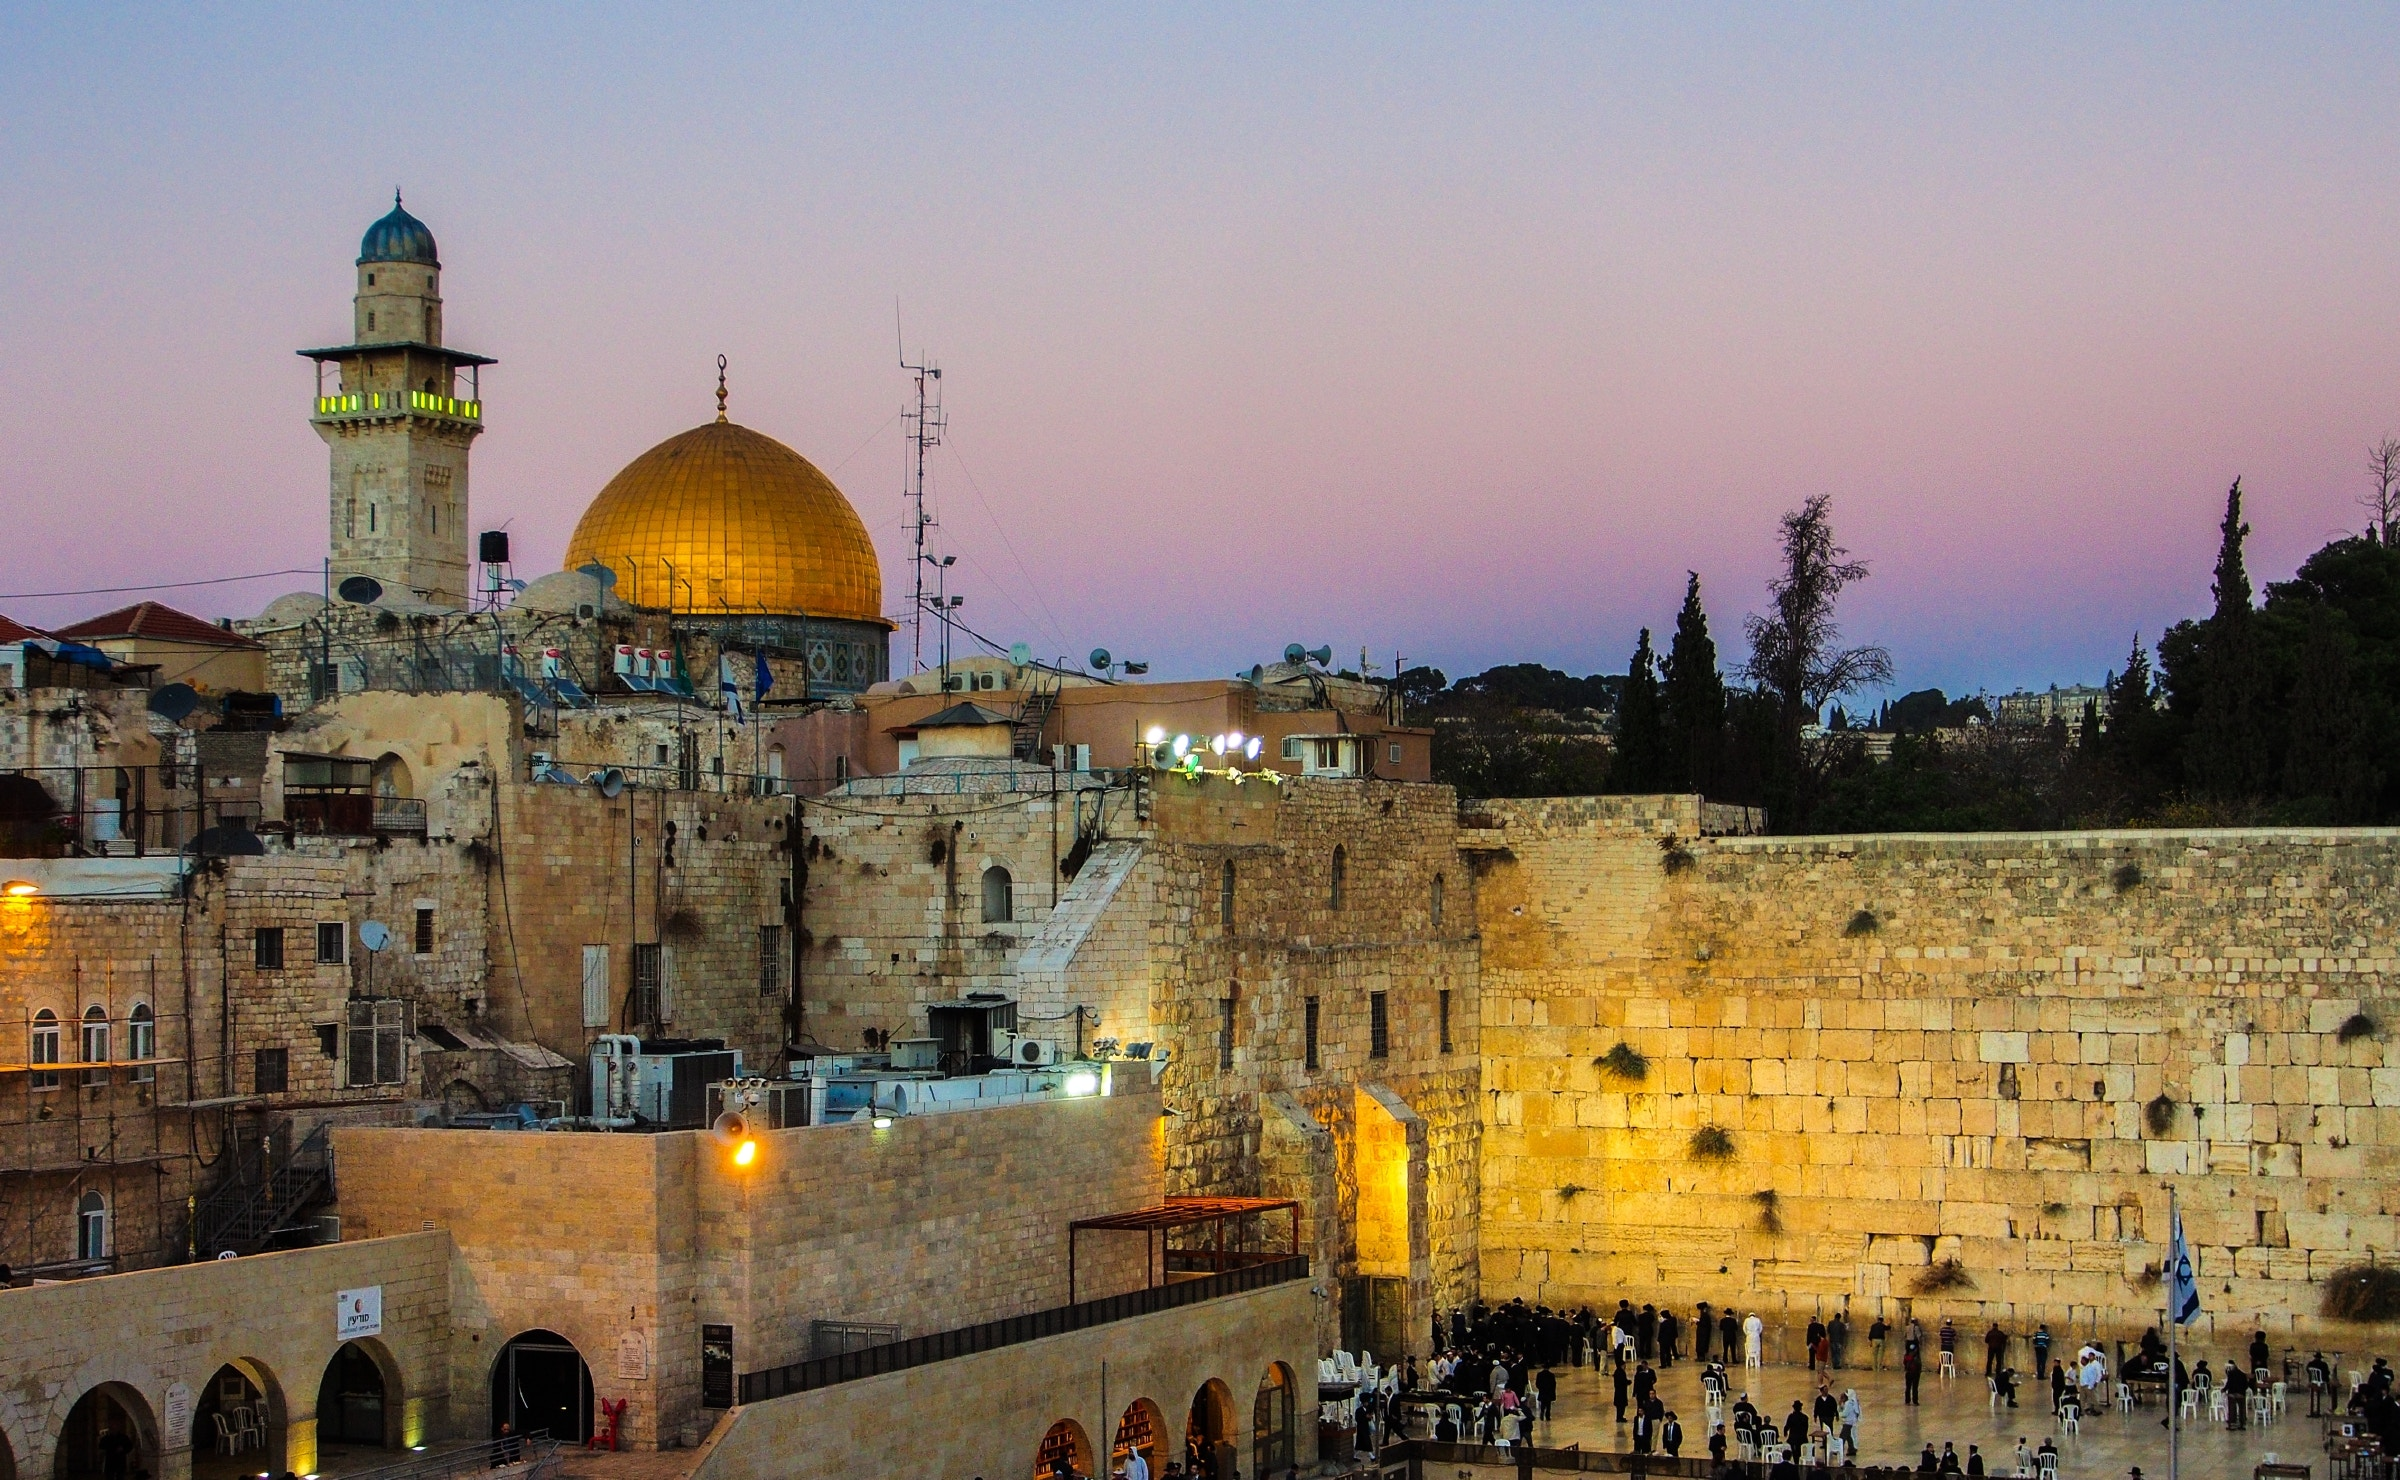 Dome of the Rock and the Wailing Wall